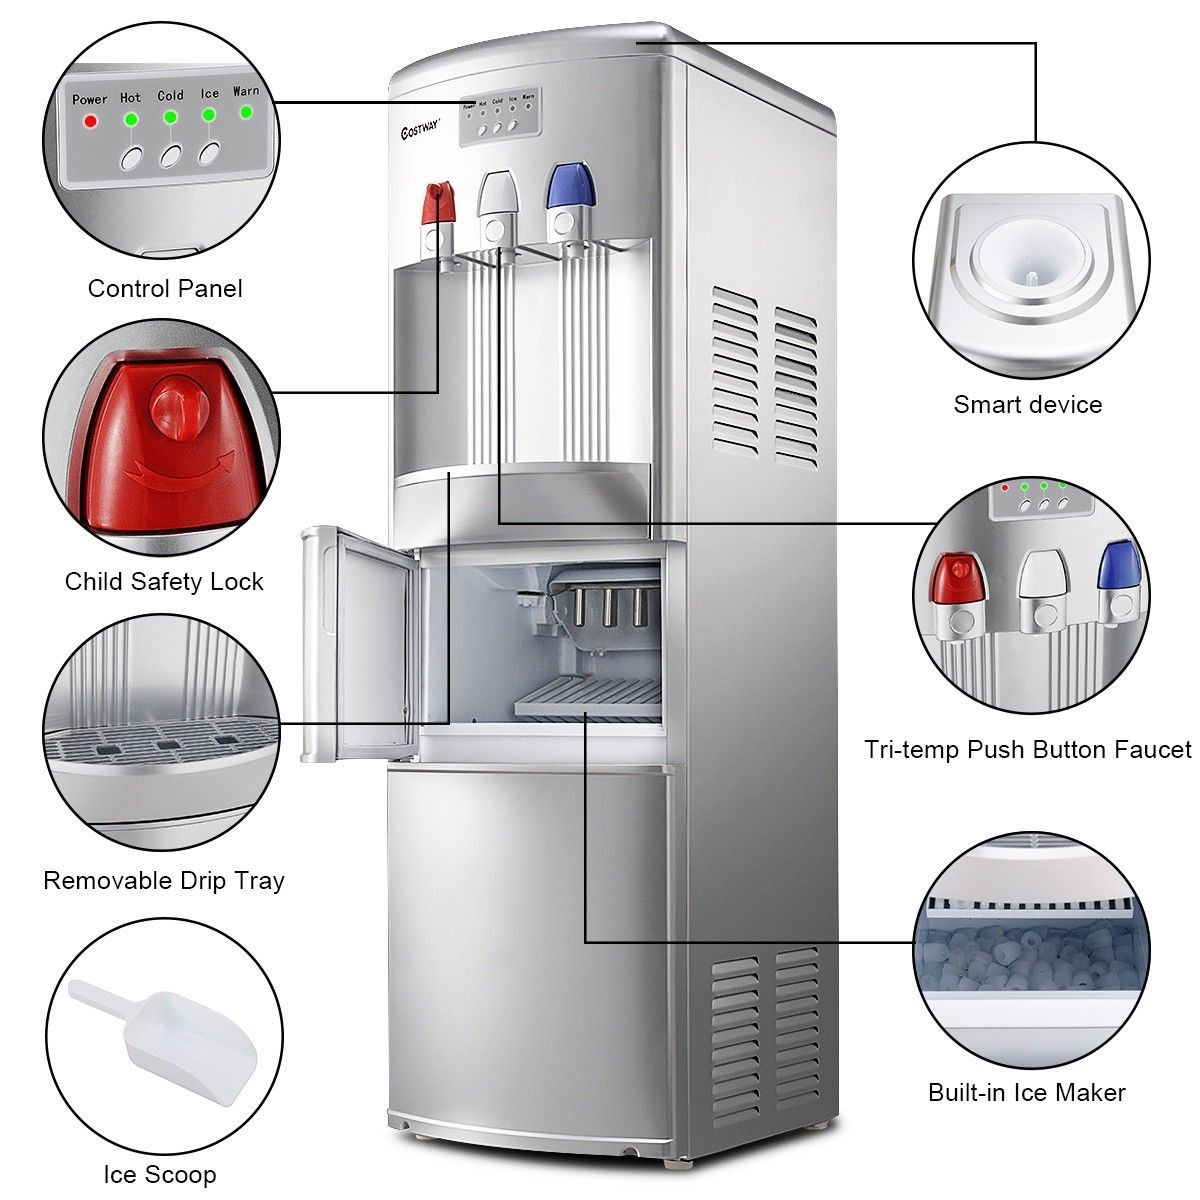 Top Loading Water Dispenser With Built In Ice Maker Machine With